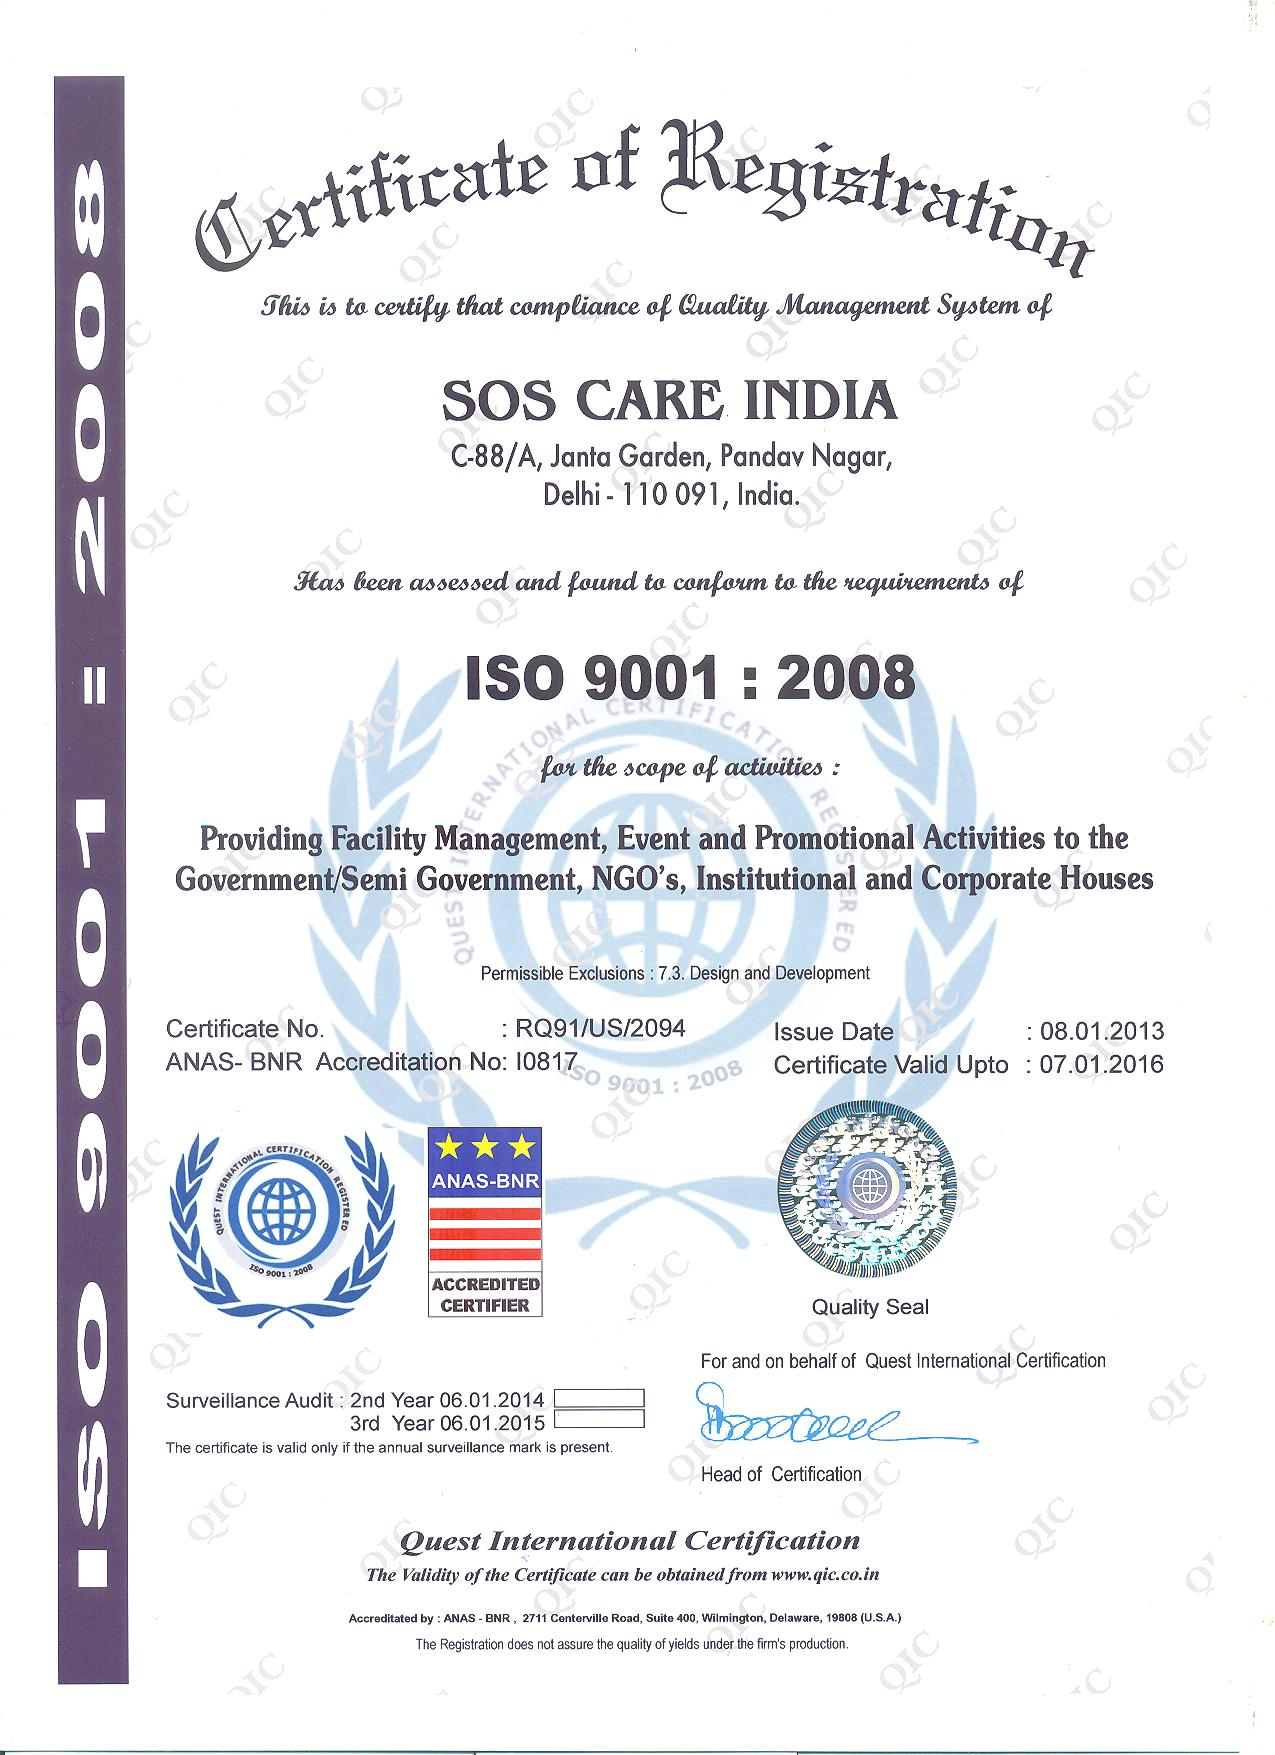 Legal status and reconitions sos care india iso certificate 1 1betcityfo Choice Image